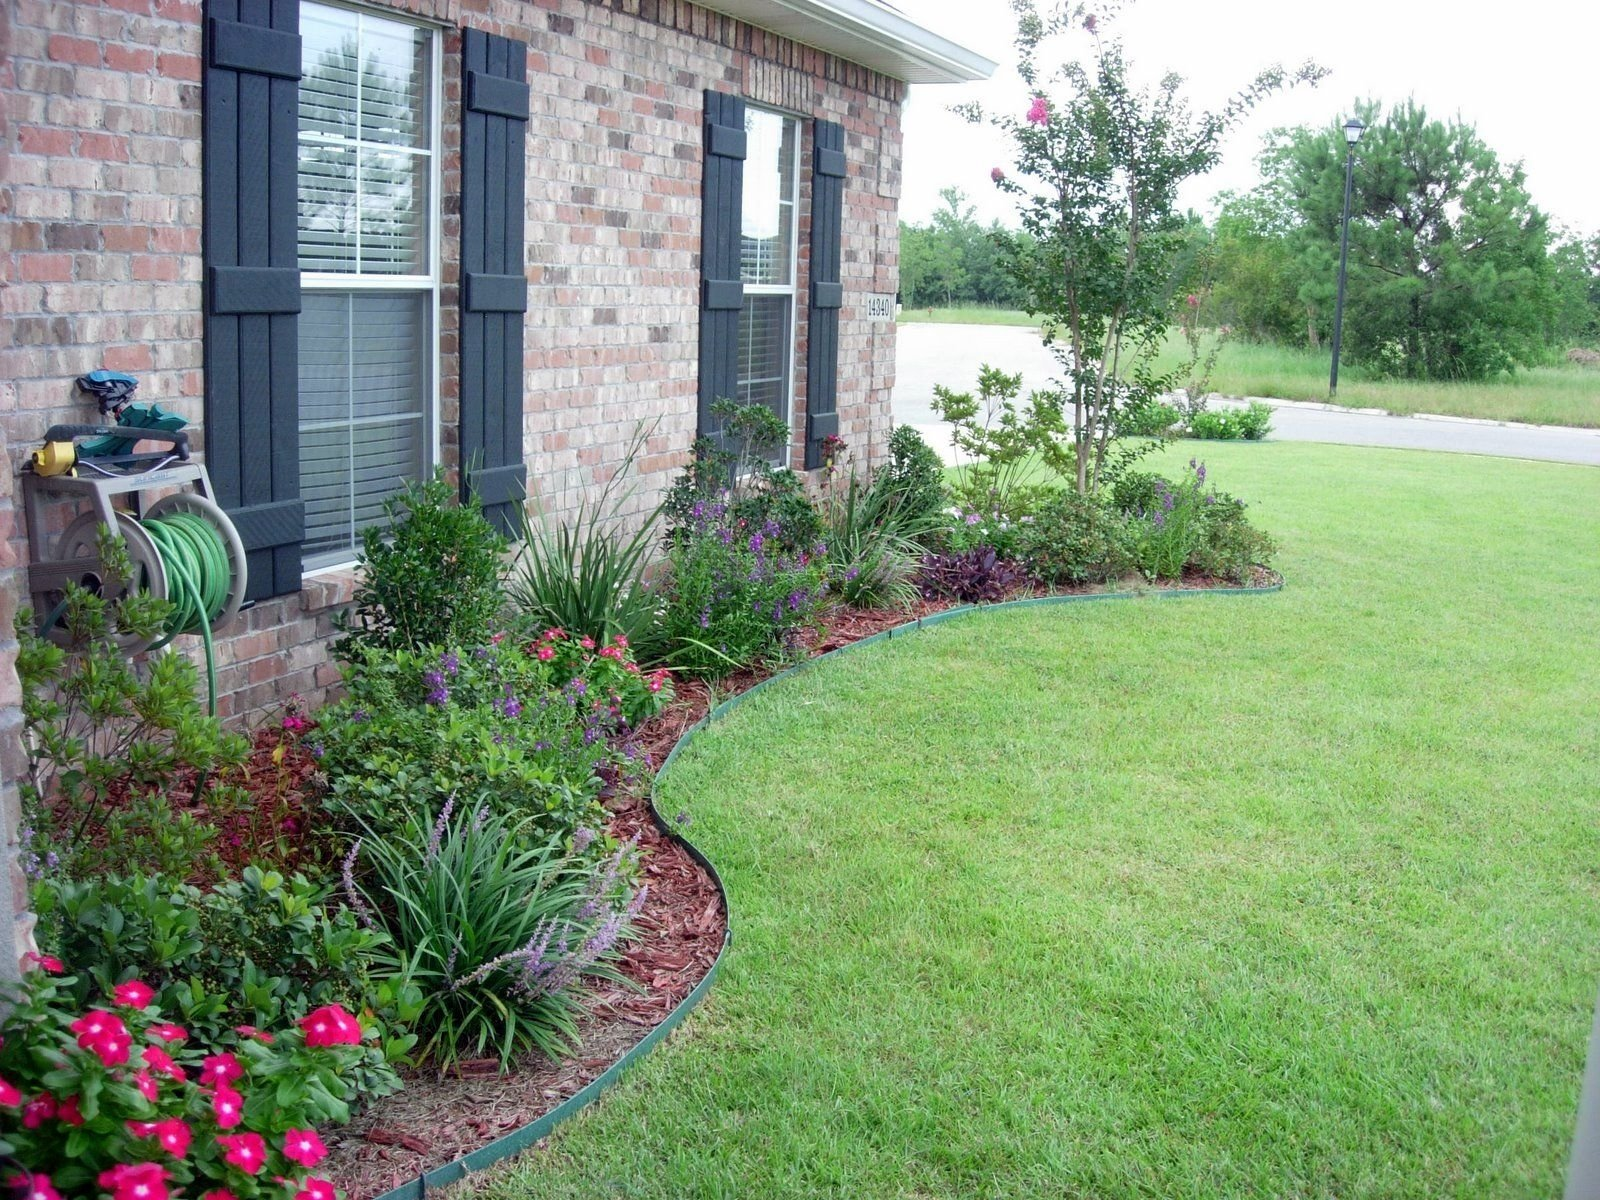 10 Lovable Flower Bed Ideas For Front Of House flower bed designs for front of house use shrubs small trees to 1 2021